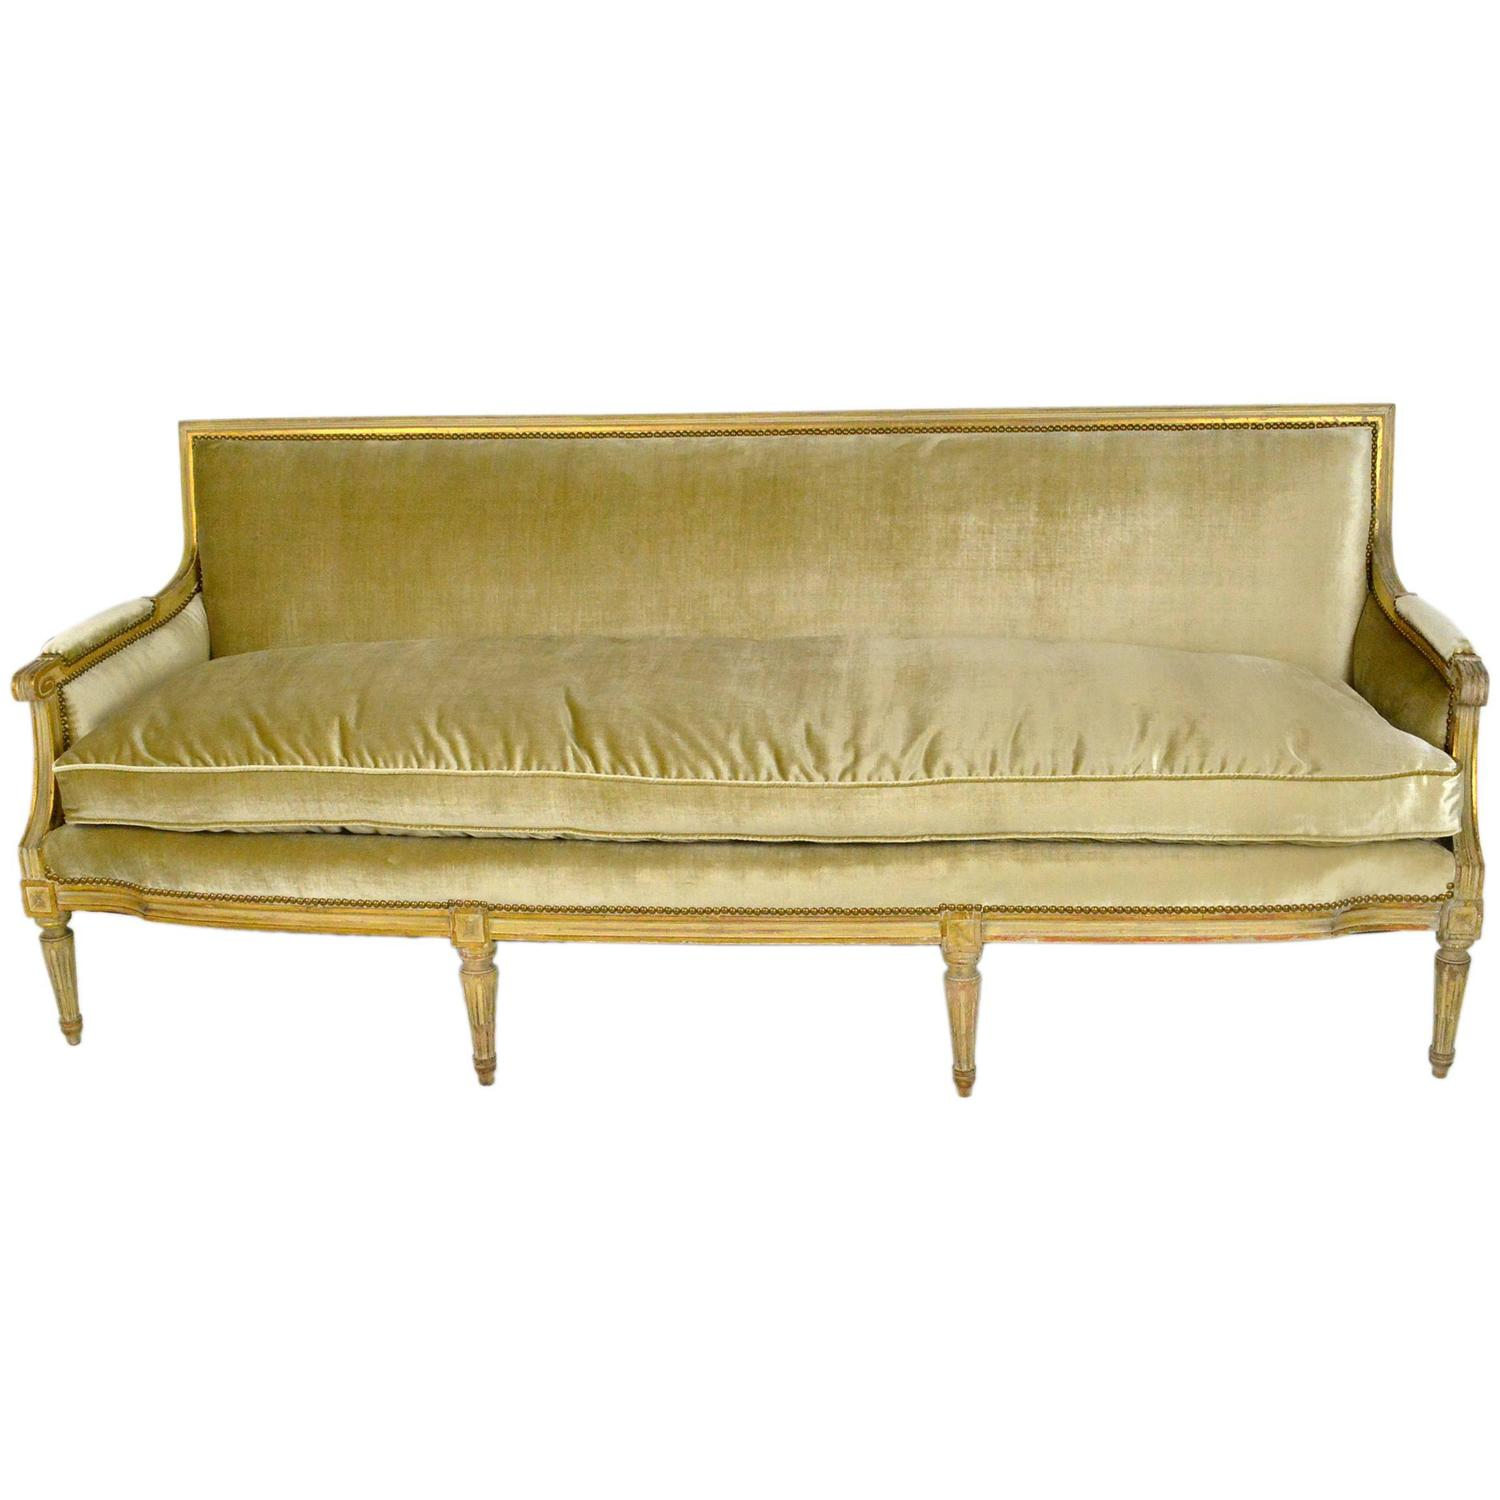 French Louis Xvi Style Painted Canape Sofa At 1stdibs